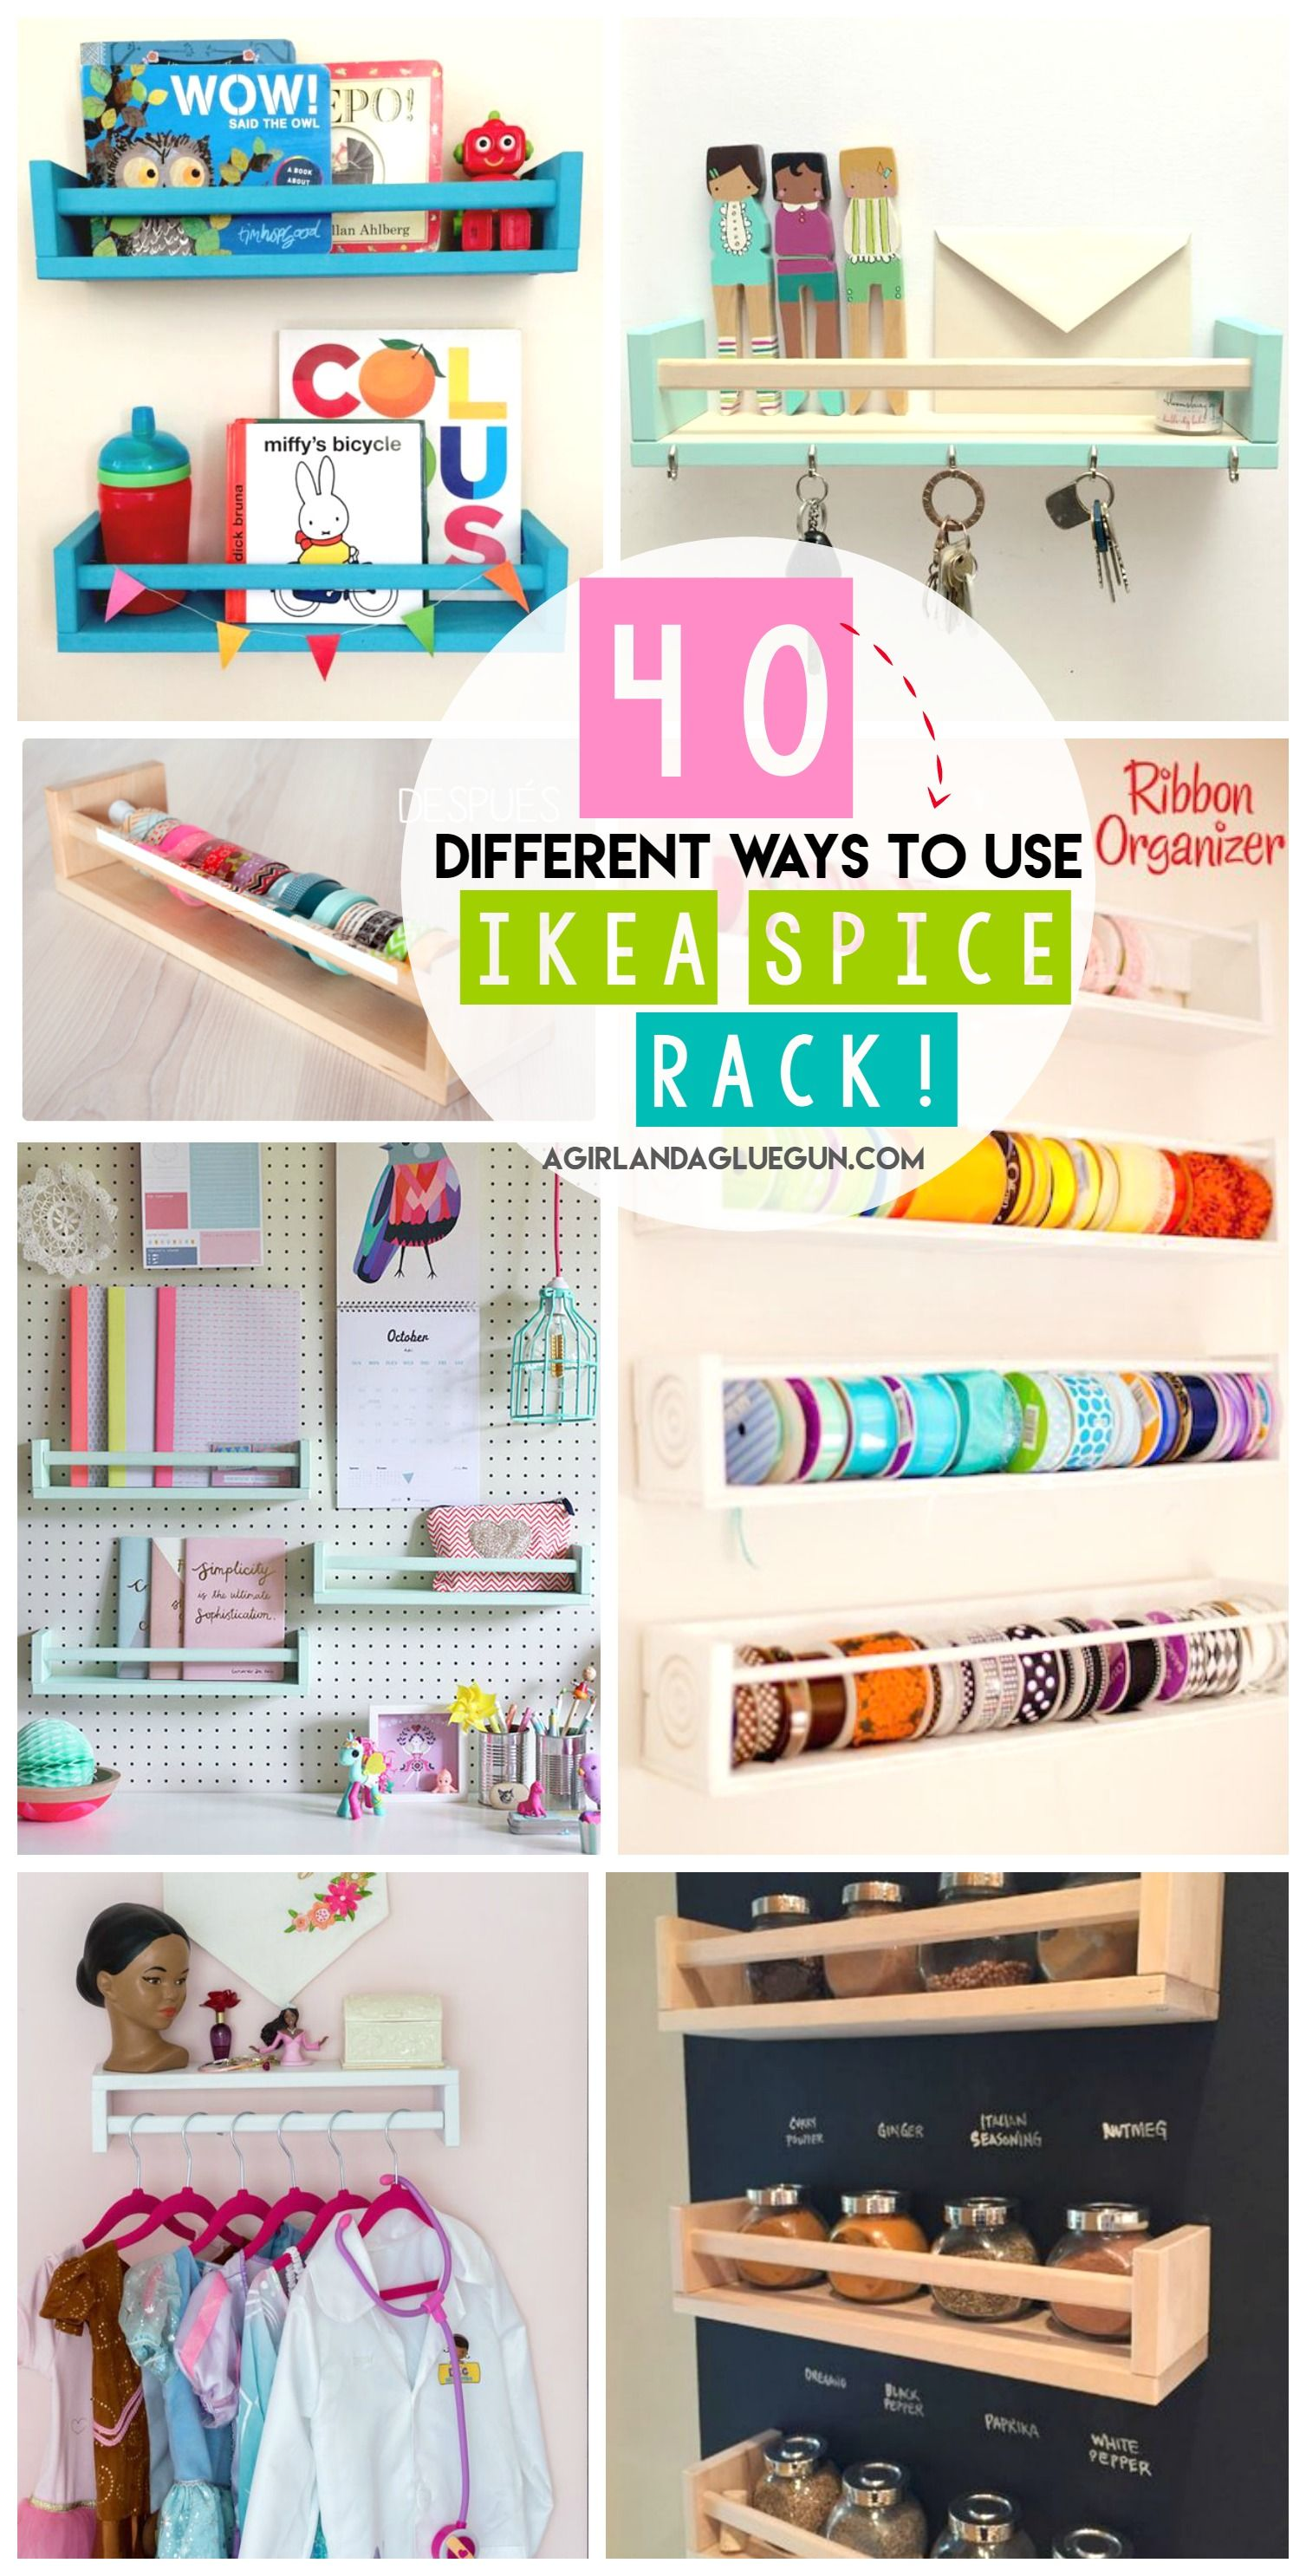 40 ways to organize with an Ikea Spice Rack | Ikea spice rack ...